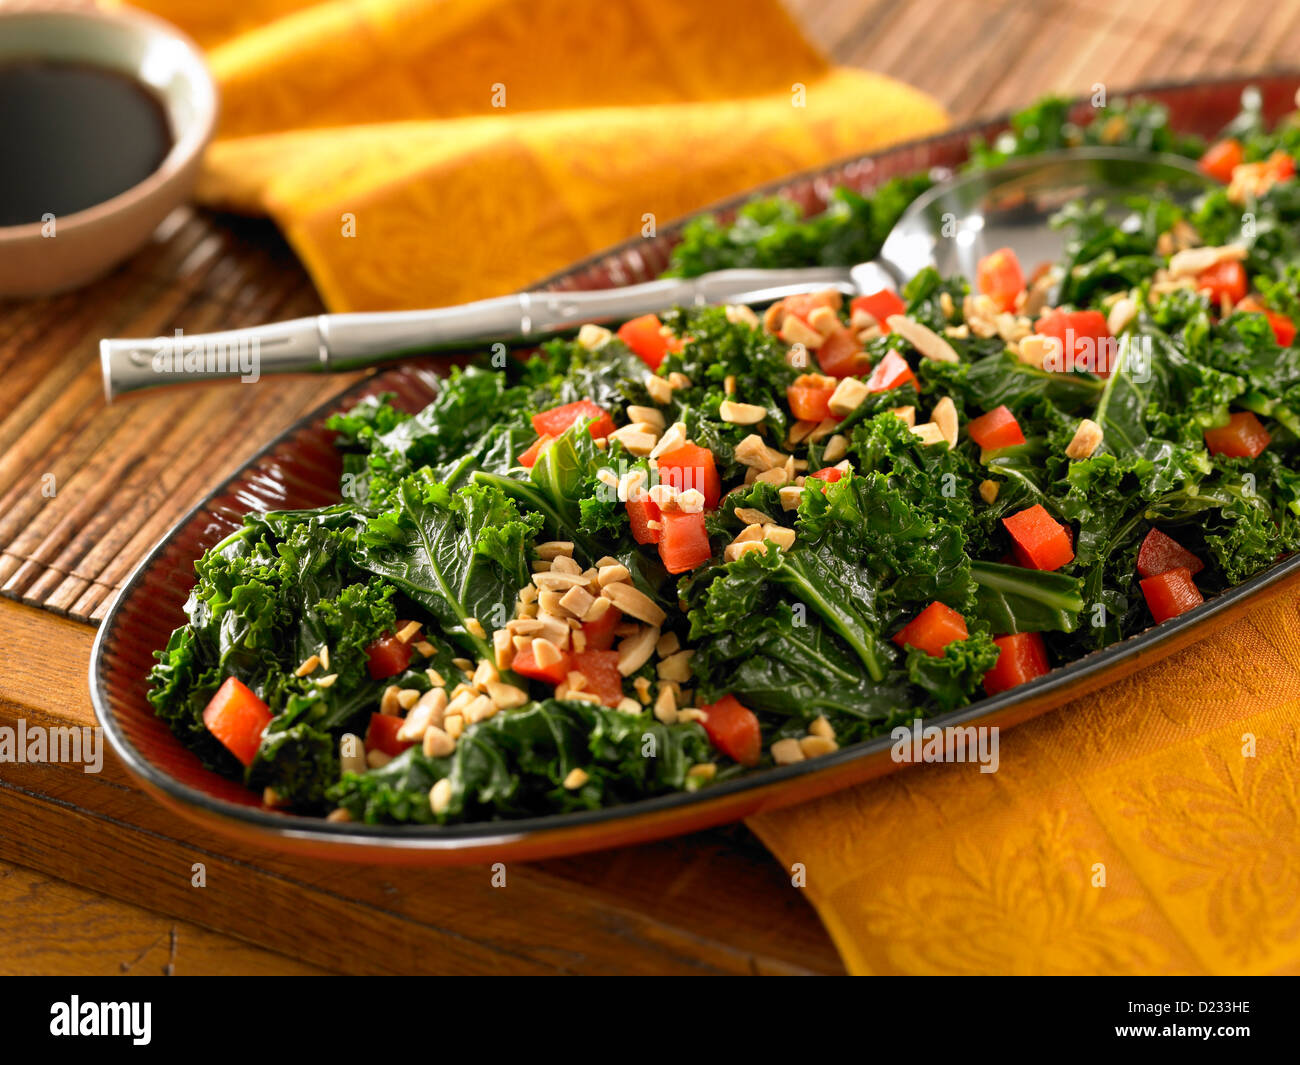 Red Bell Pepper Kale Salad Stock Photo 52929114 Alamy